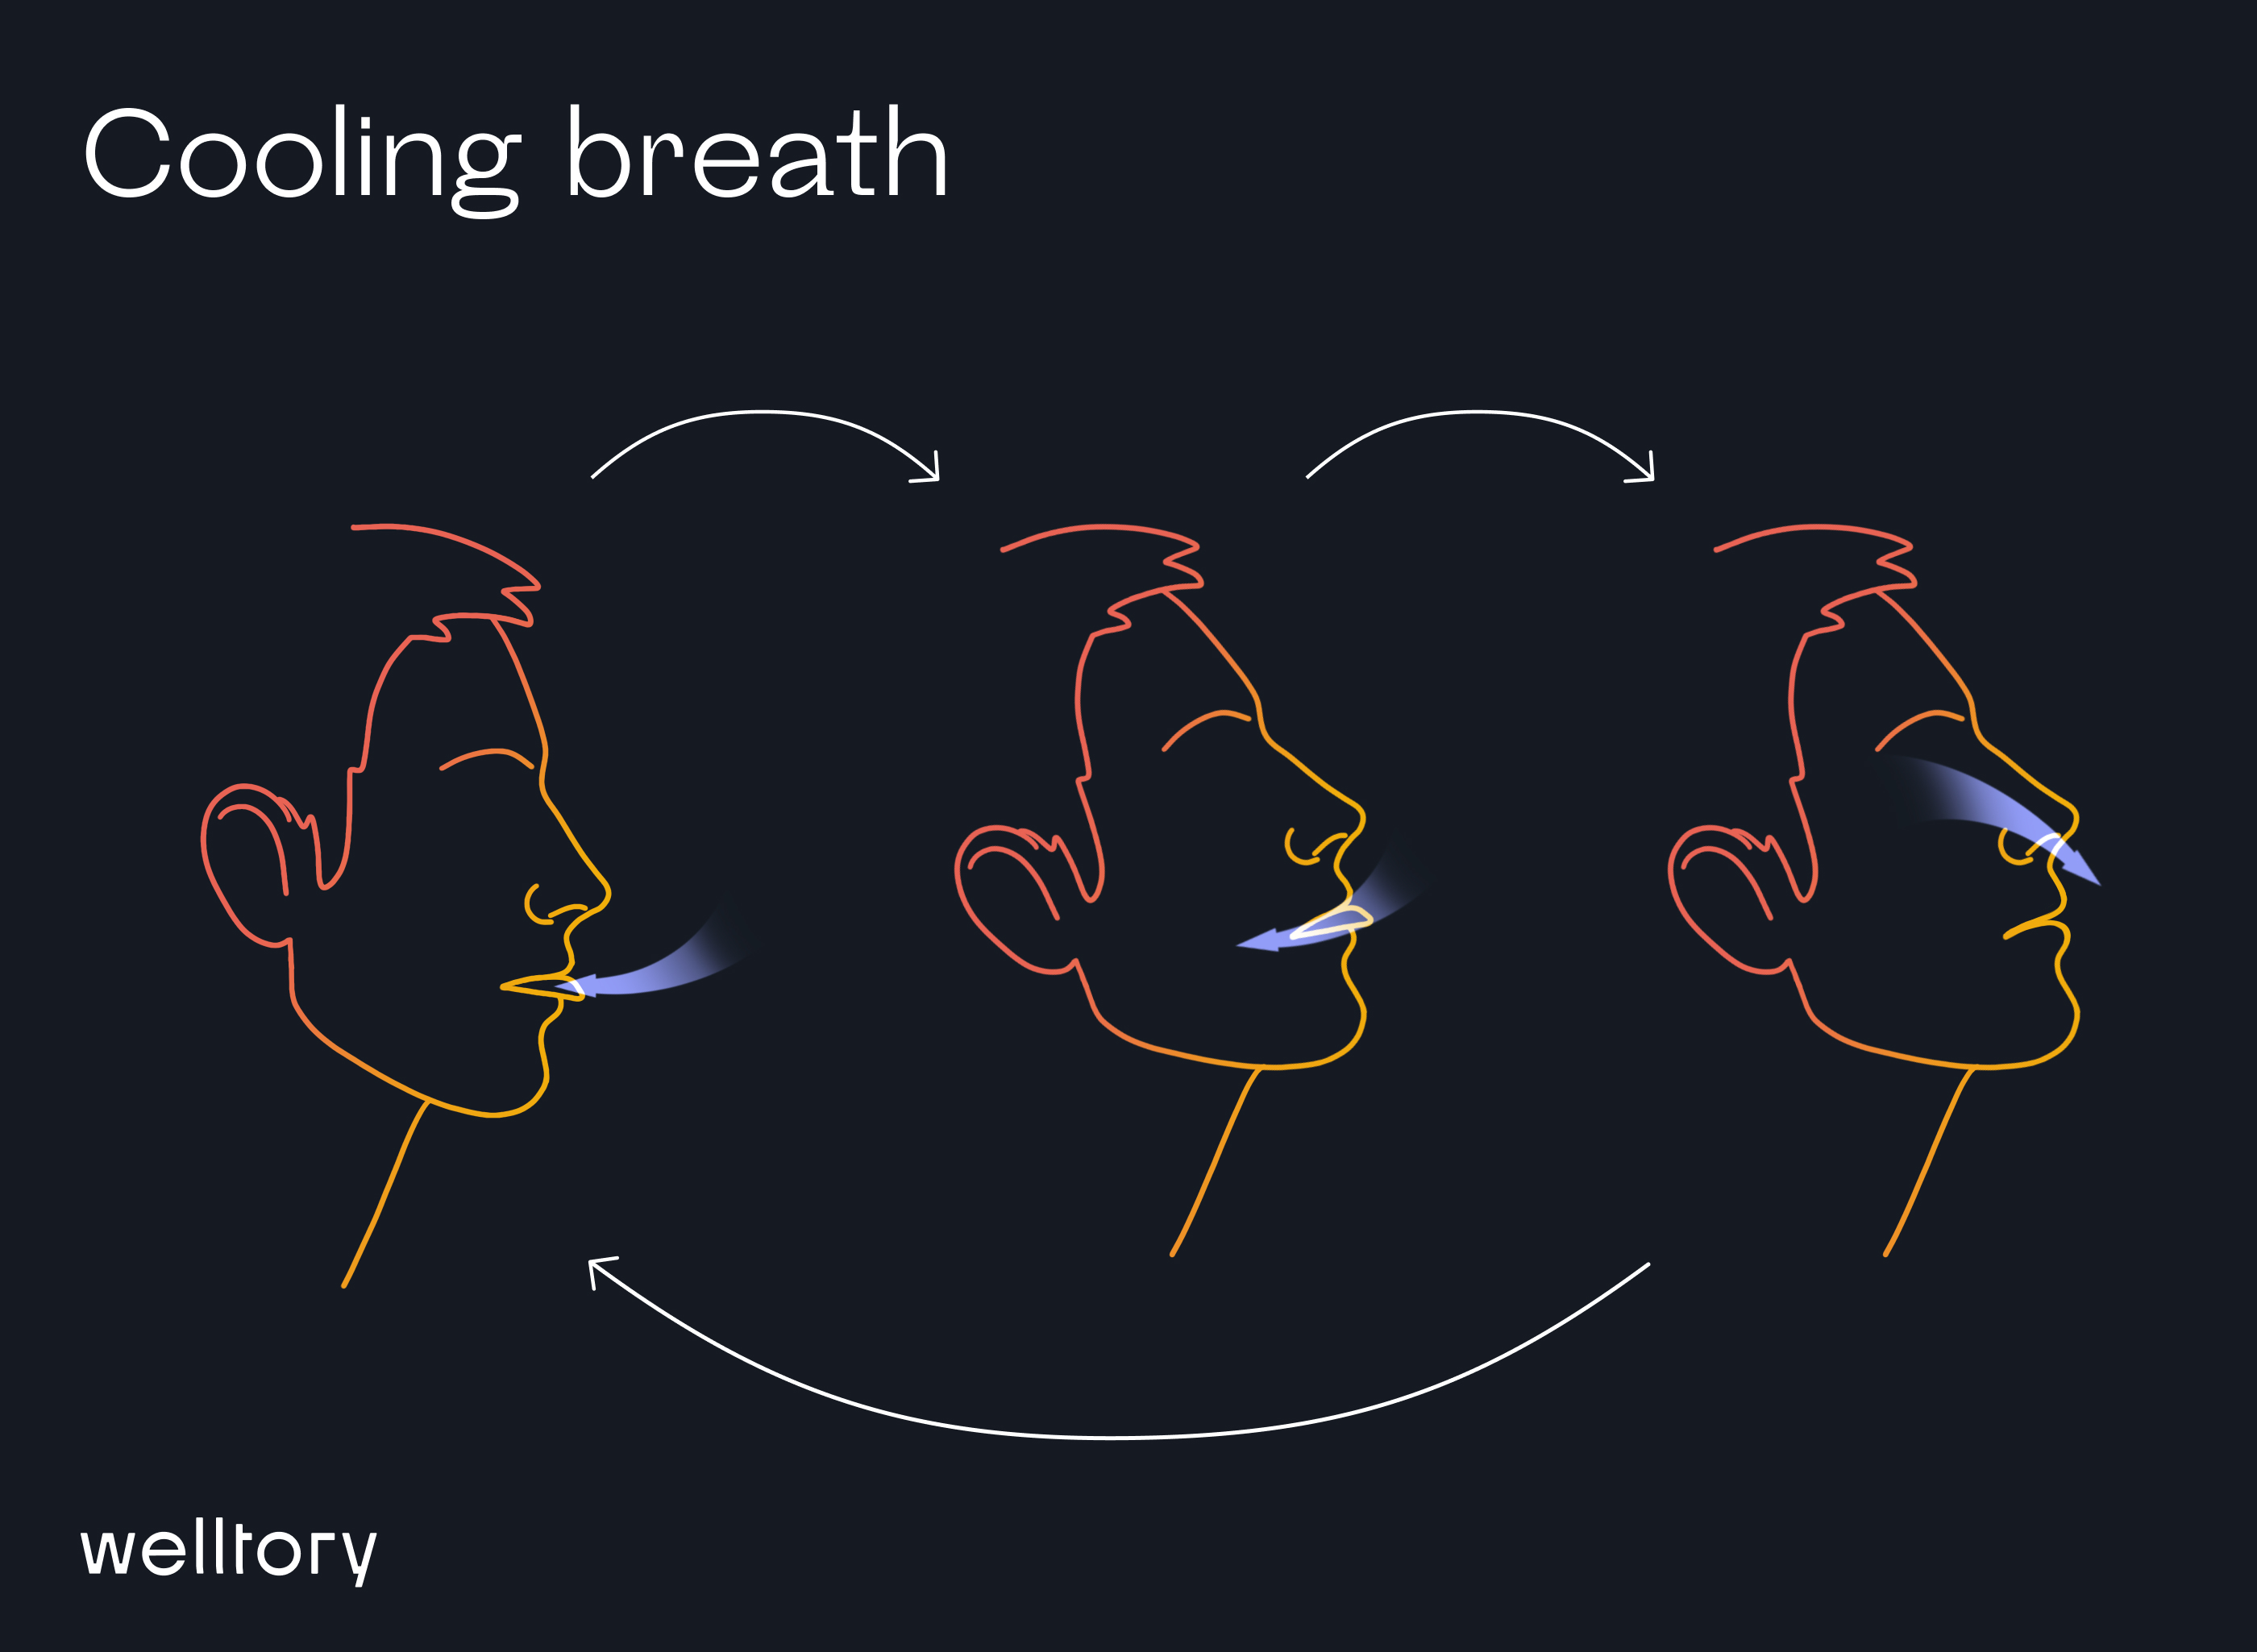 Cooling breath